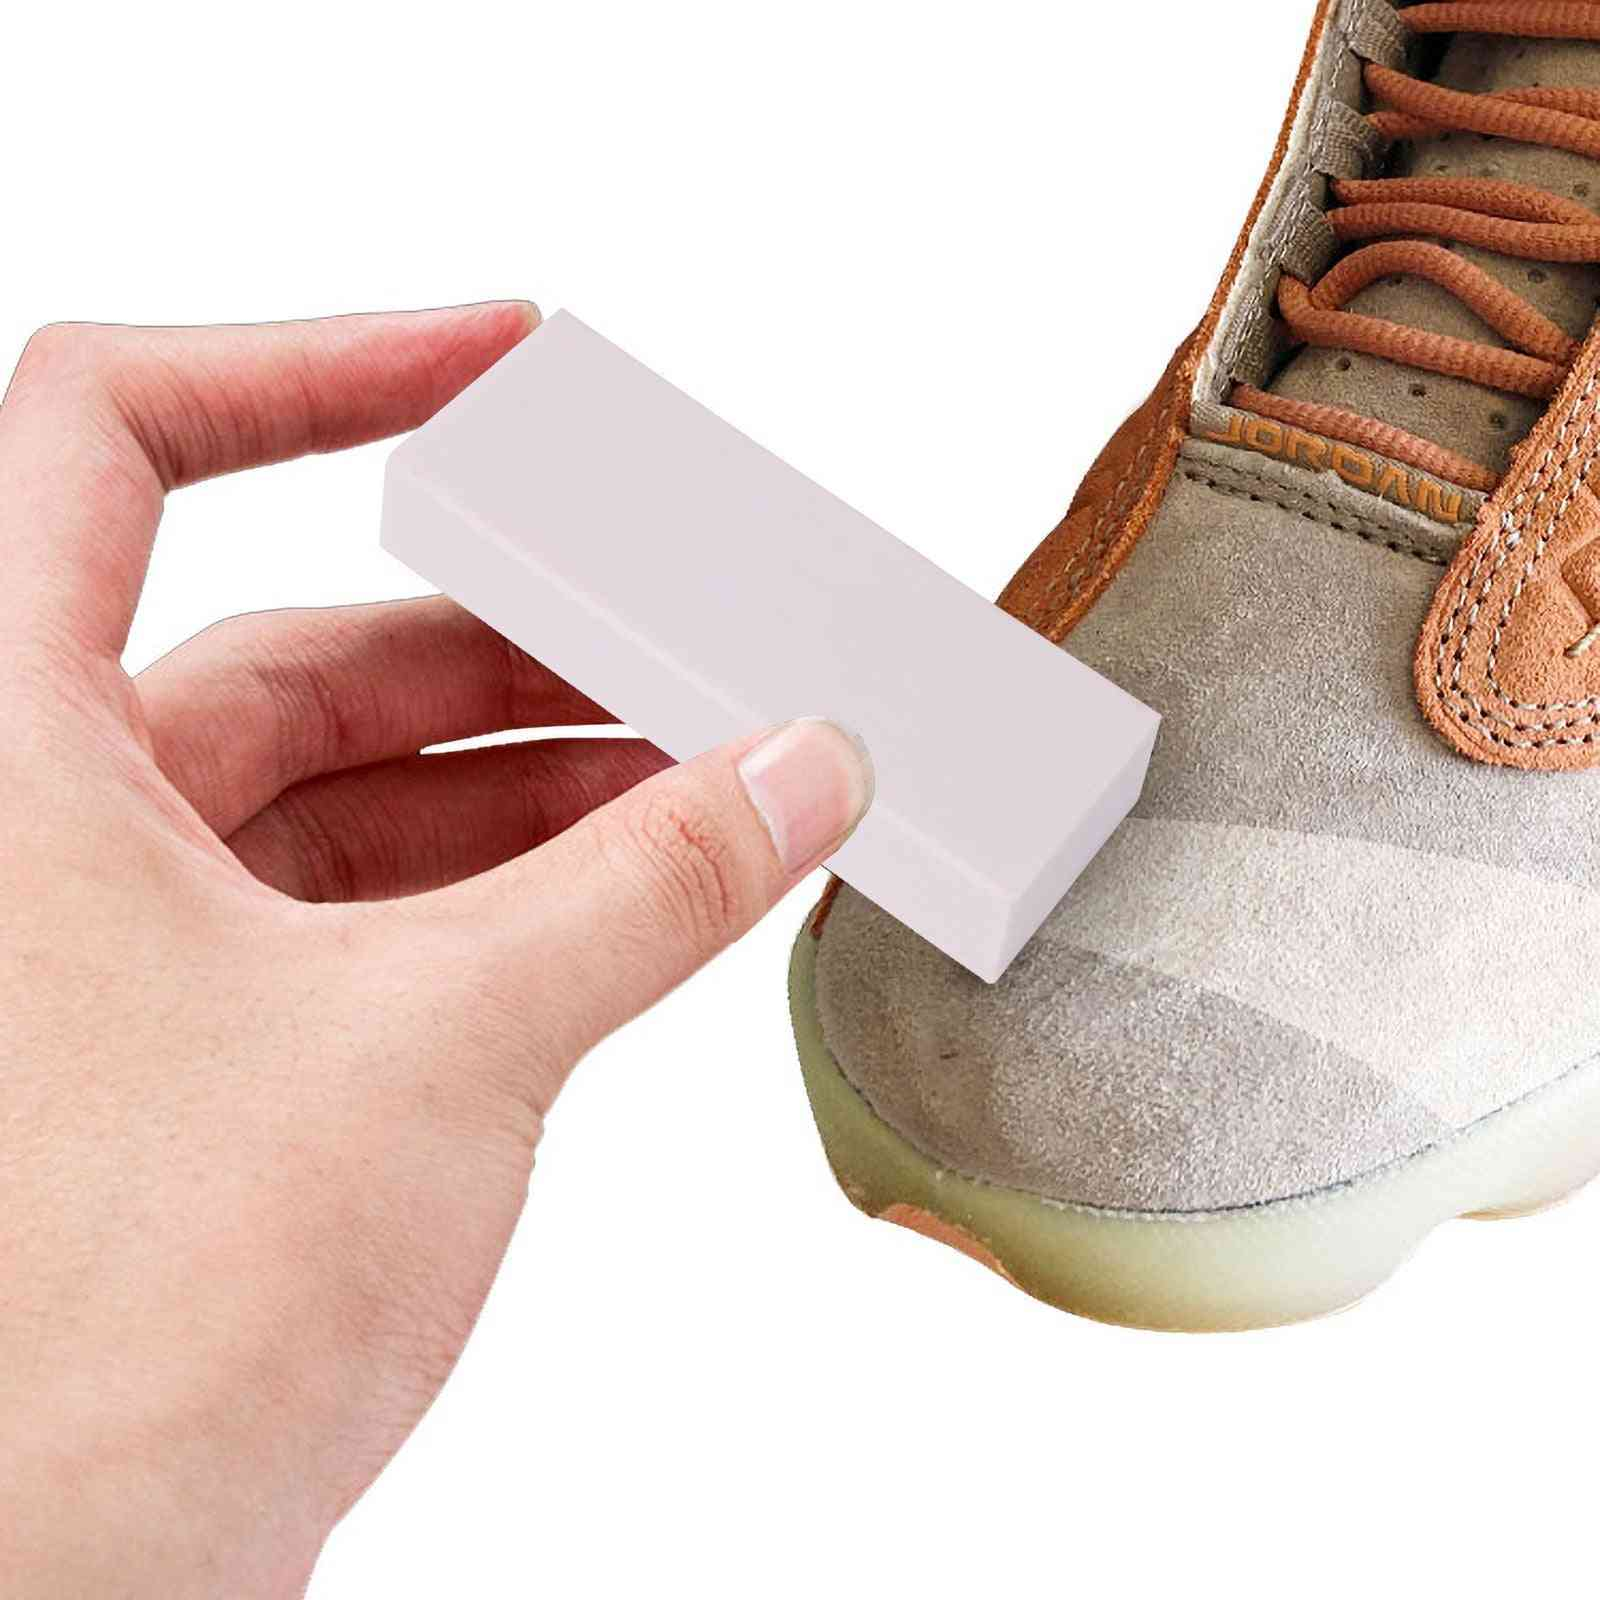 Shoe Cleaning Eraser, Suede Sheepskin, Matte Care, Leather Fabric Brush